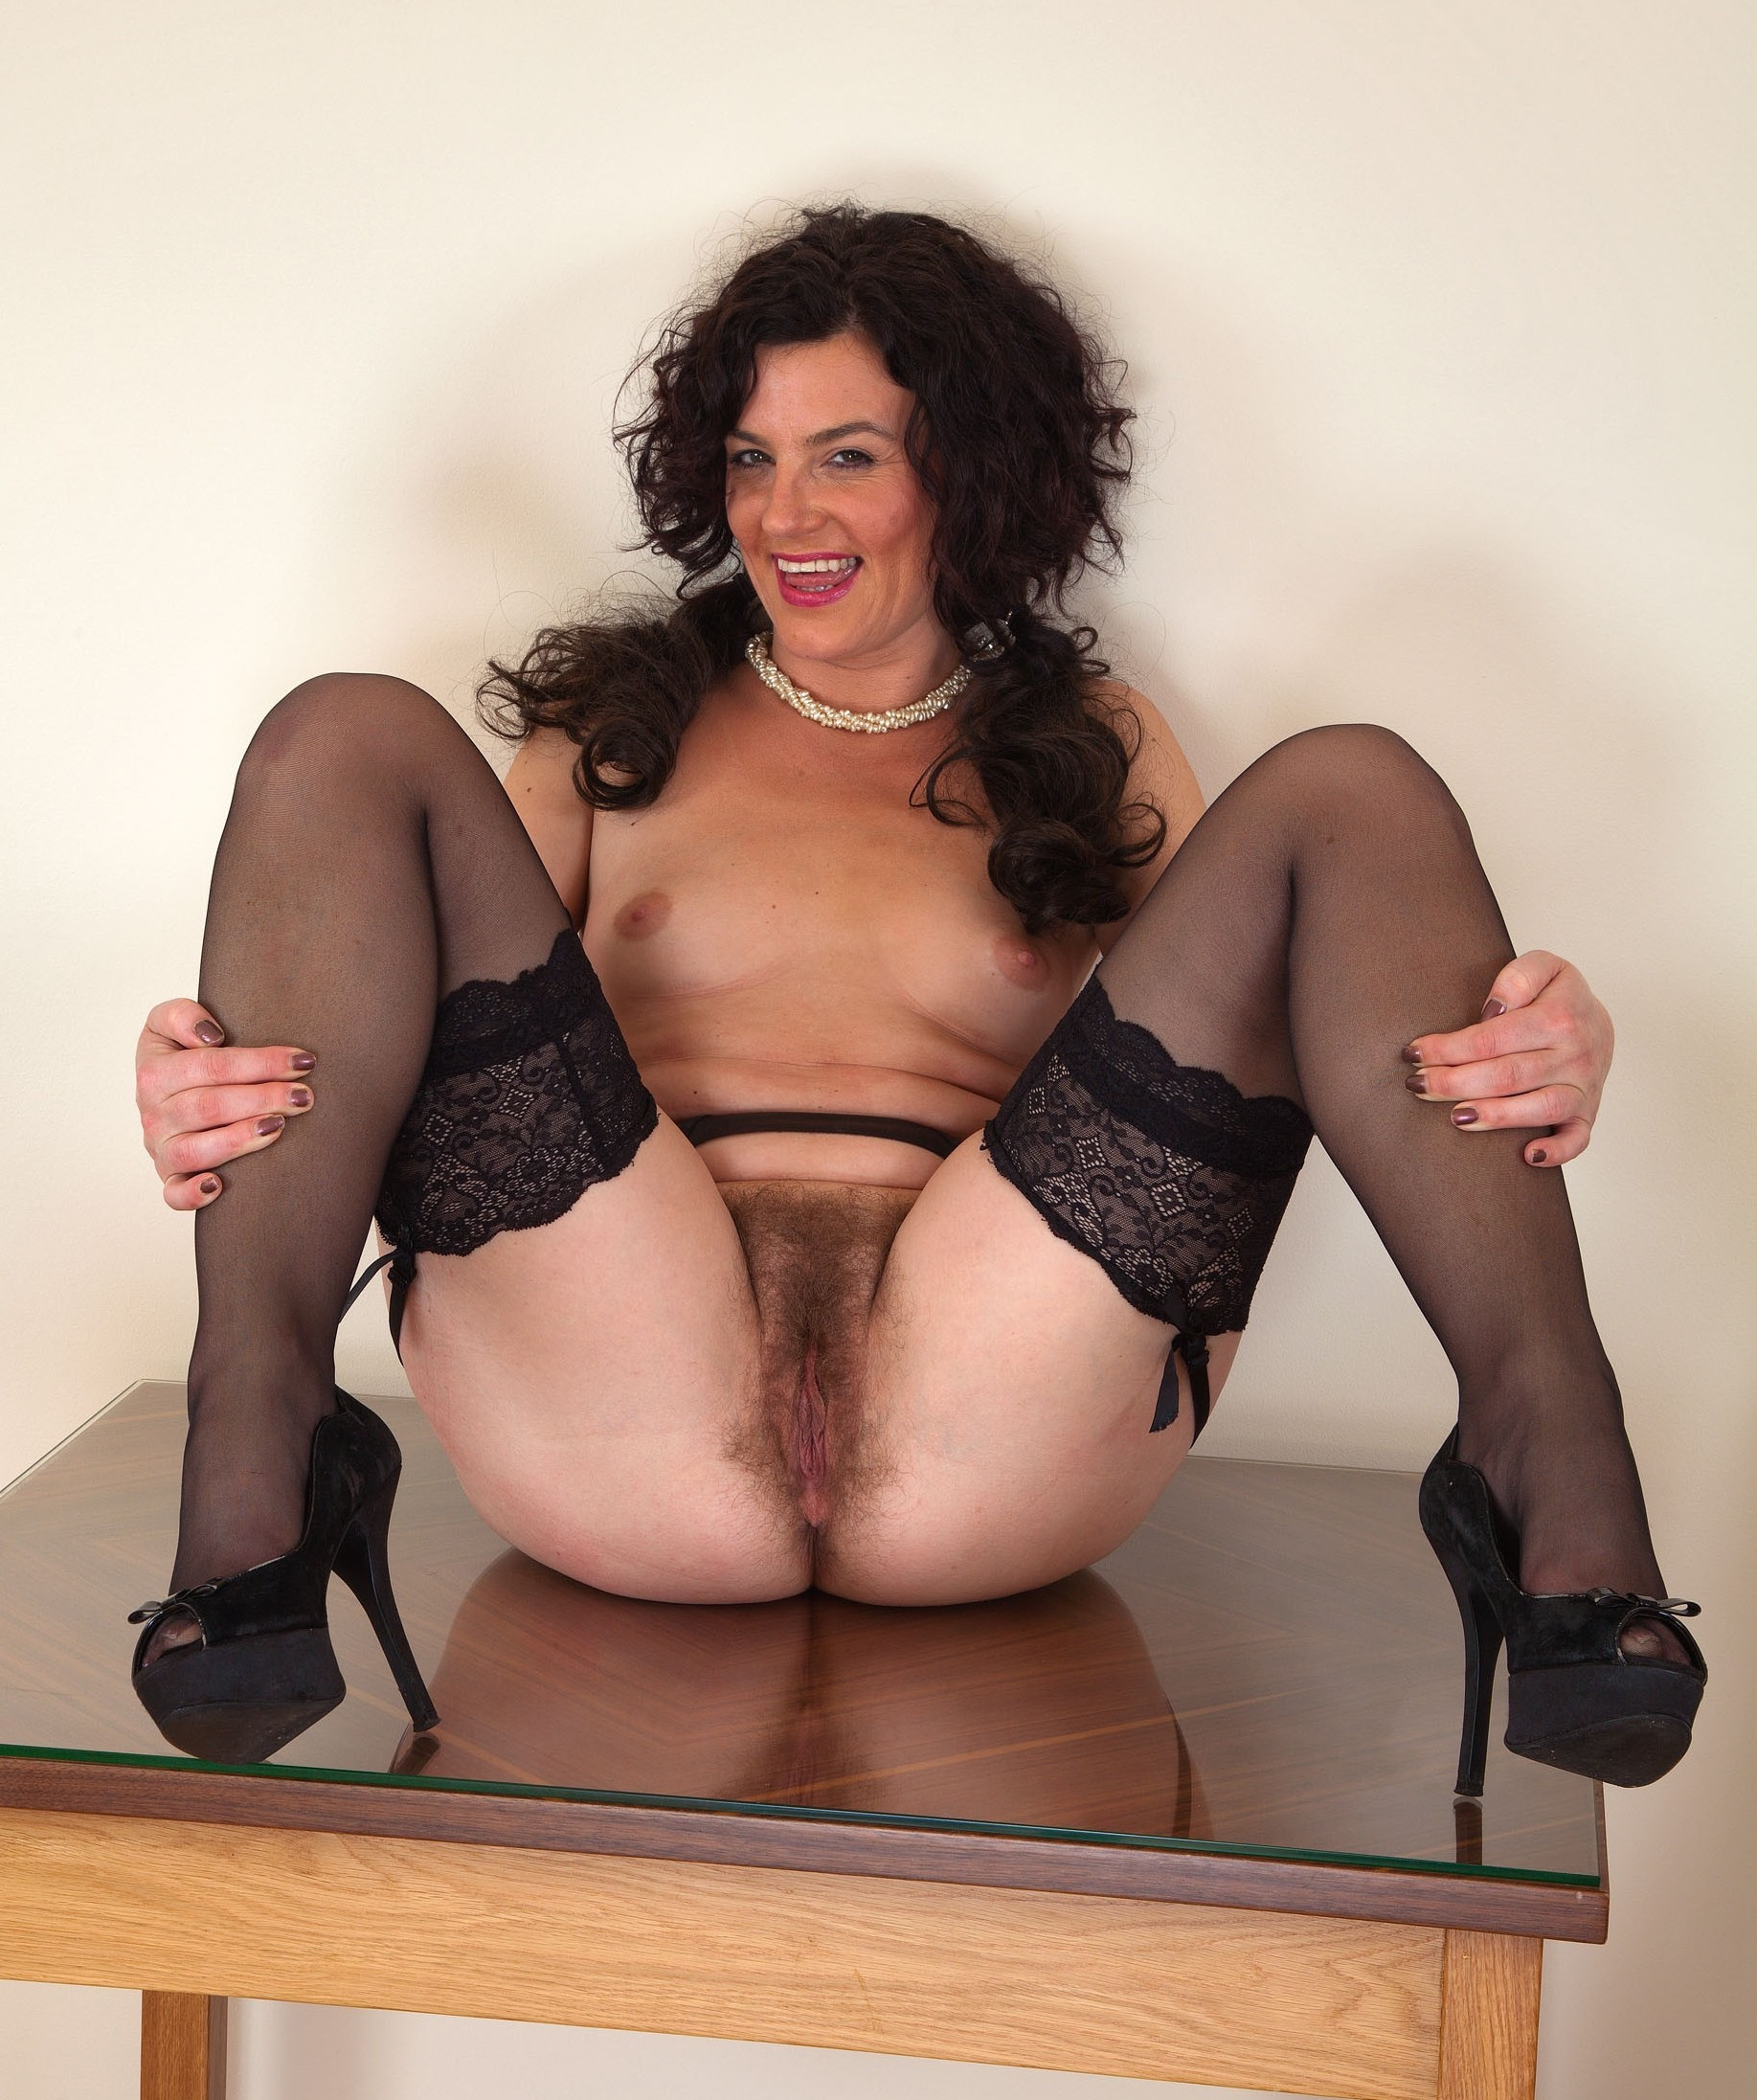 charmed porn parody this ain charmed this one missed the mark #Alexandra#Ale082#ATKHairy#mature#milf#mom#mommy#cougar#wife#olderwomen#hairy#hairypussy#bush#natural#pussy#hot#sexy#brunette#stockings